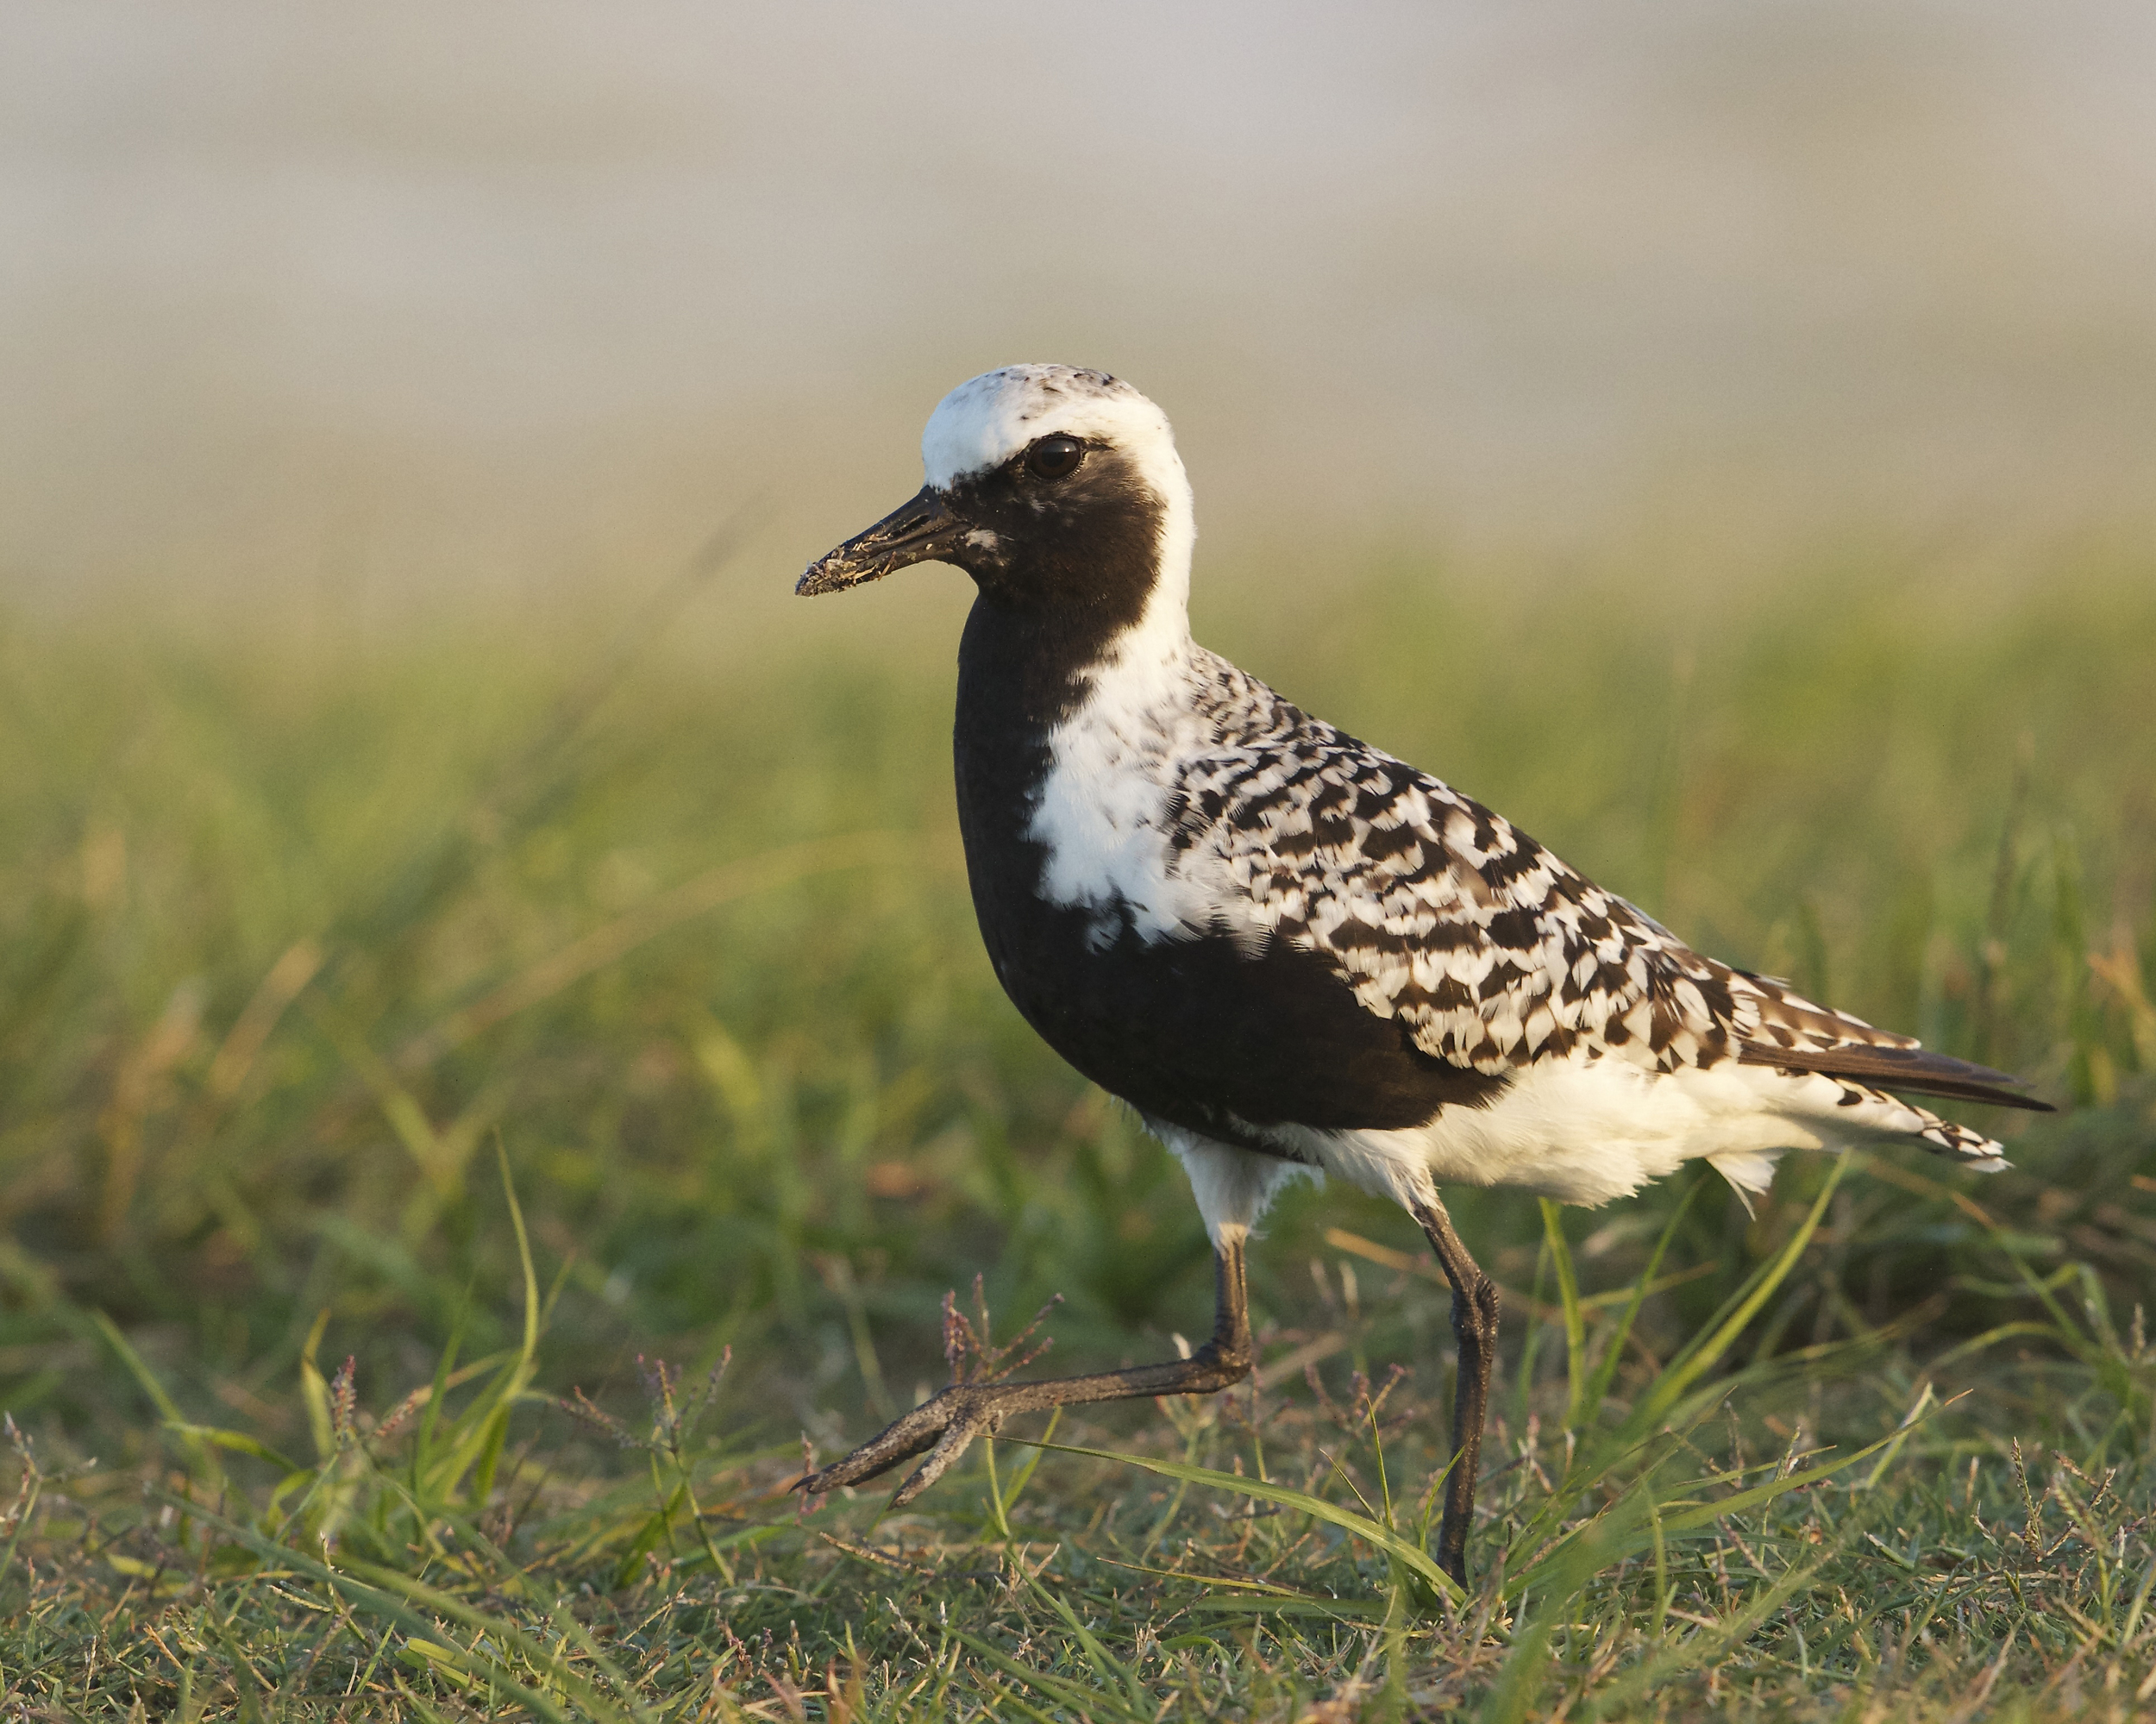 A Migratory bird, the Black Bellied Plover in breeding colors.